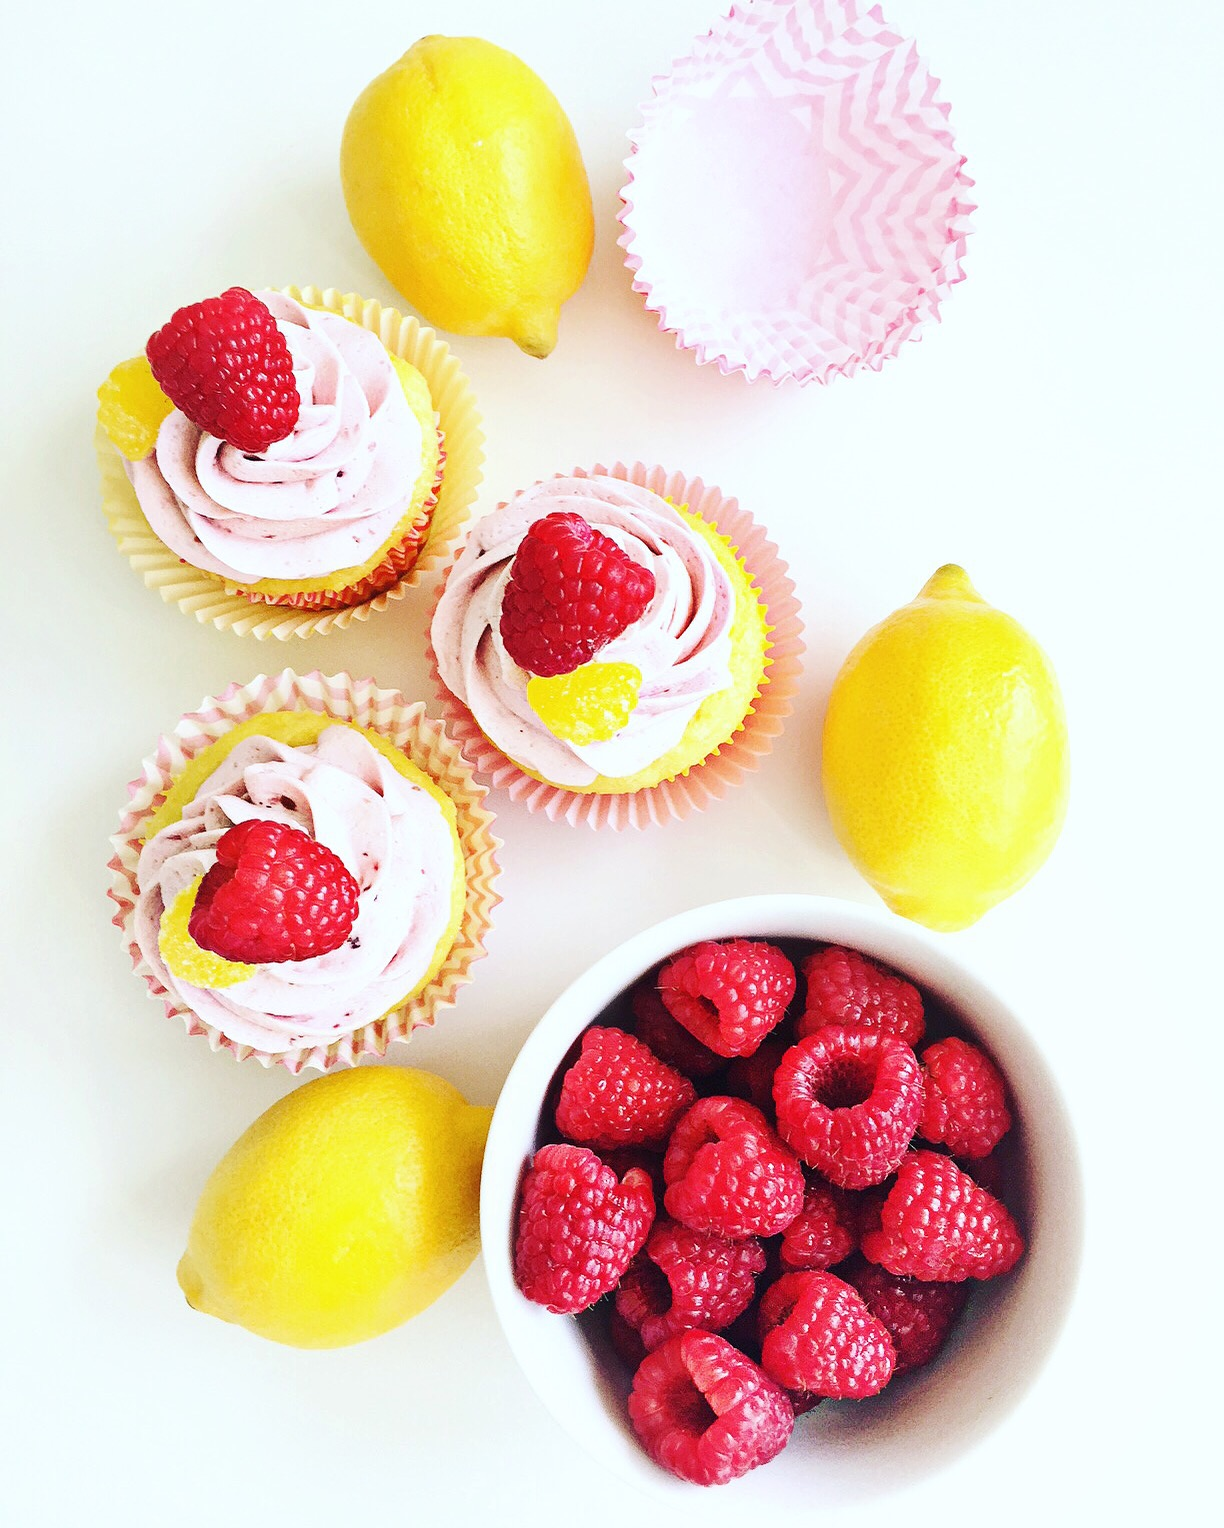 Raspberry lemon cupcakes with raspberry compote filling